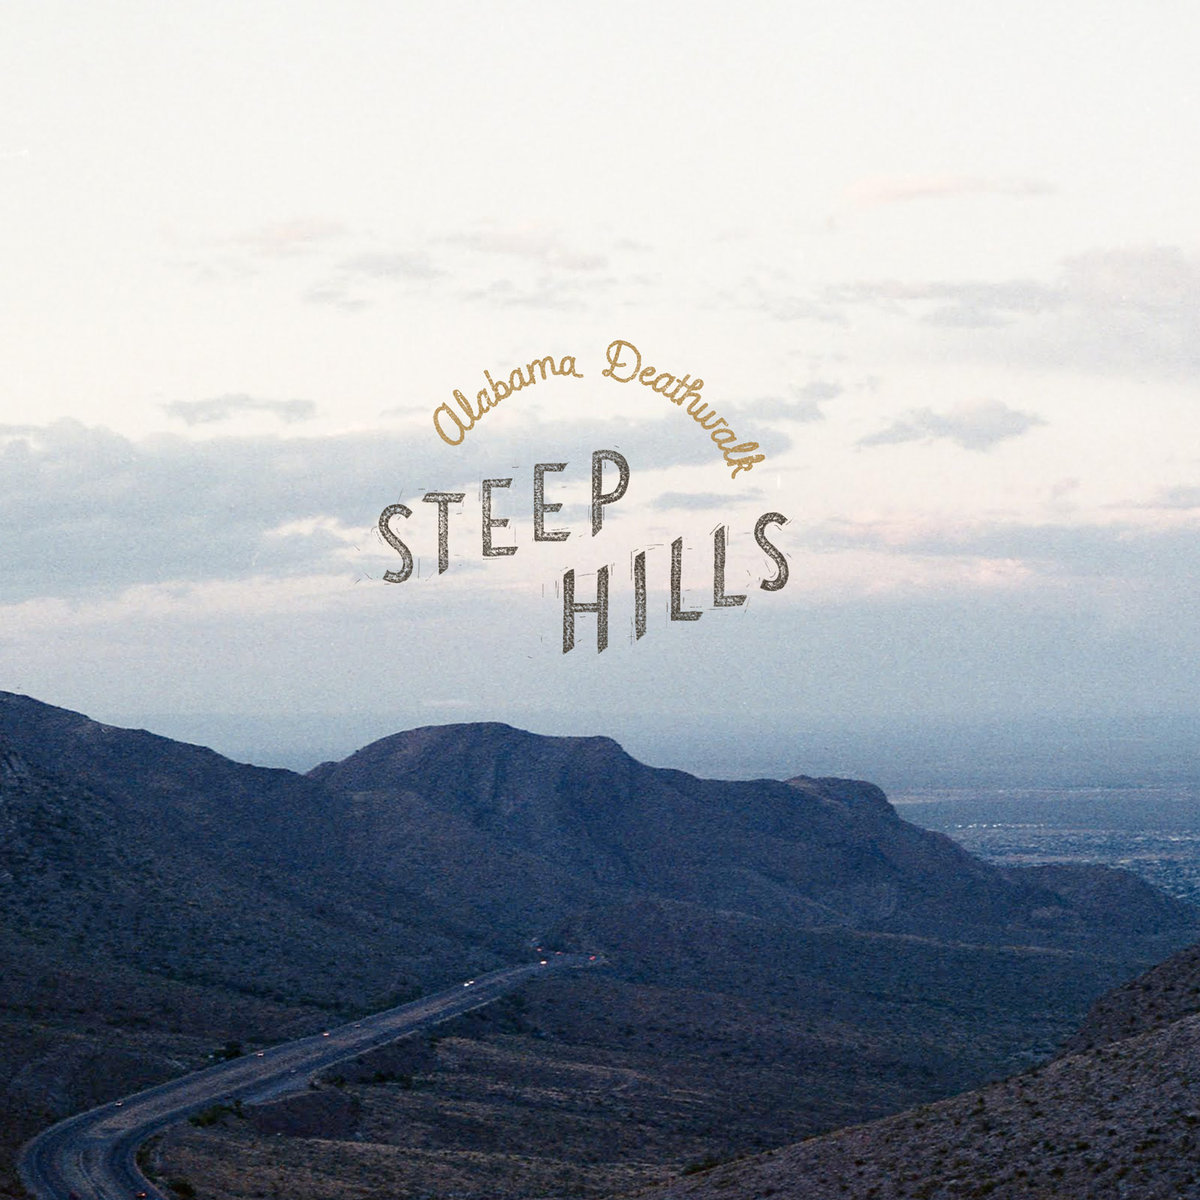 Alabama Deathwalk - Steep Hills